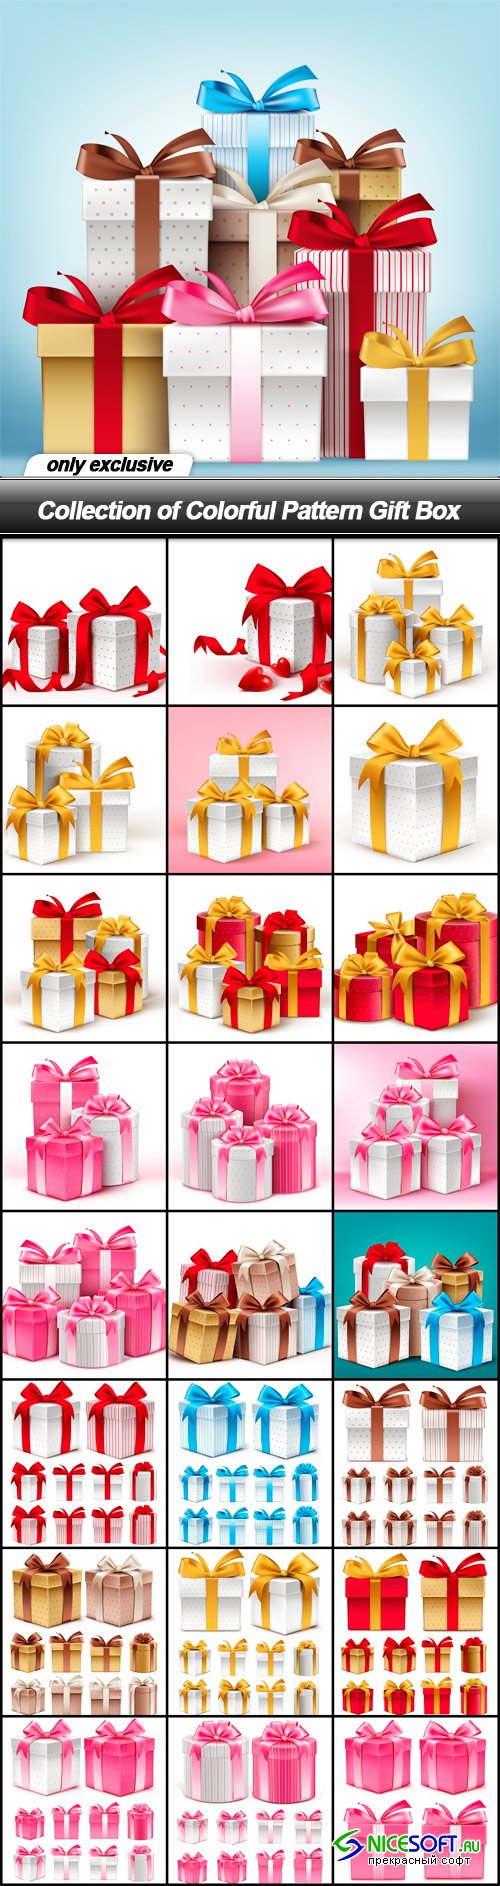 Collection of Colorful Pattern Gift Box